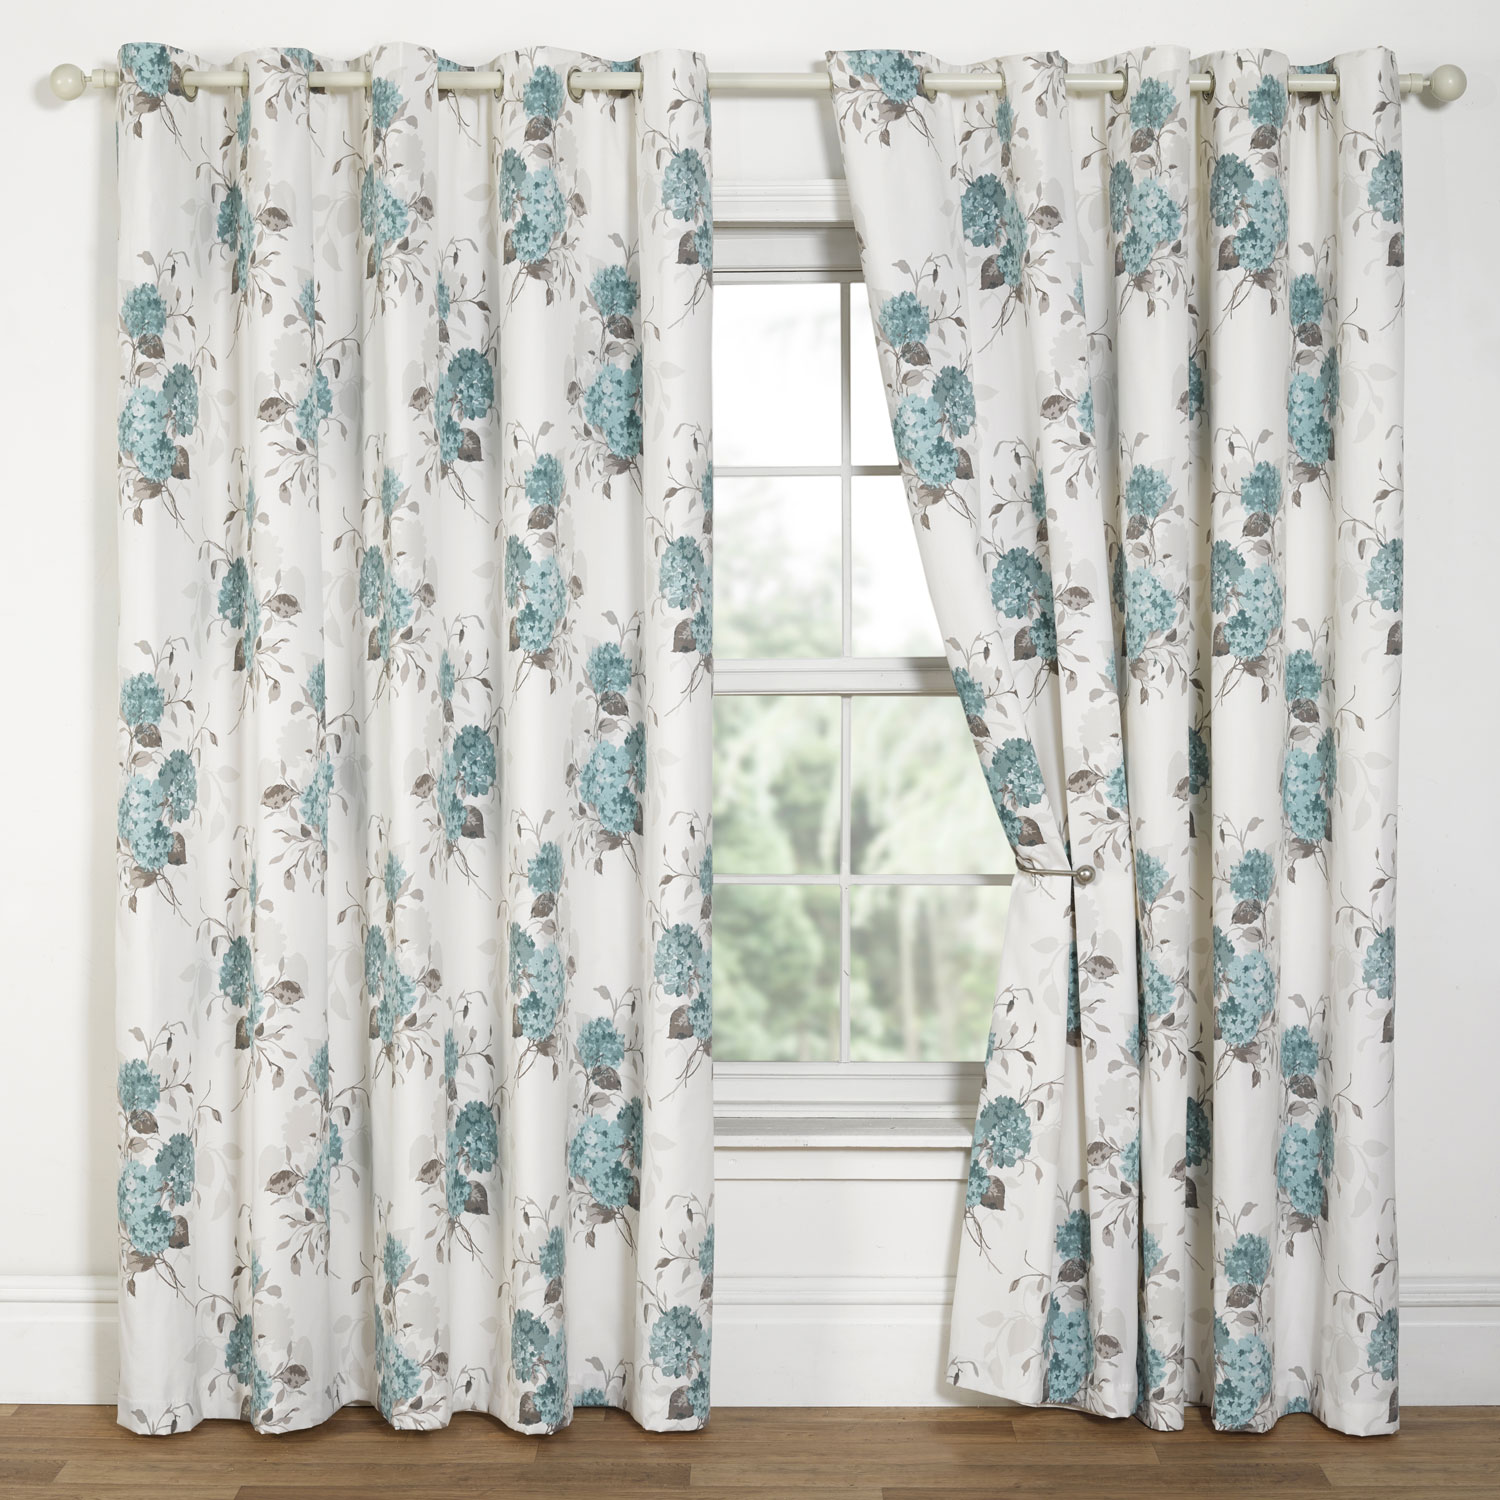 Gardinen Muster Adorn Your Interior With White Patterned Curtains | Homesfeed